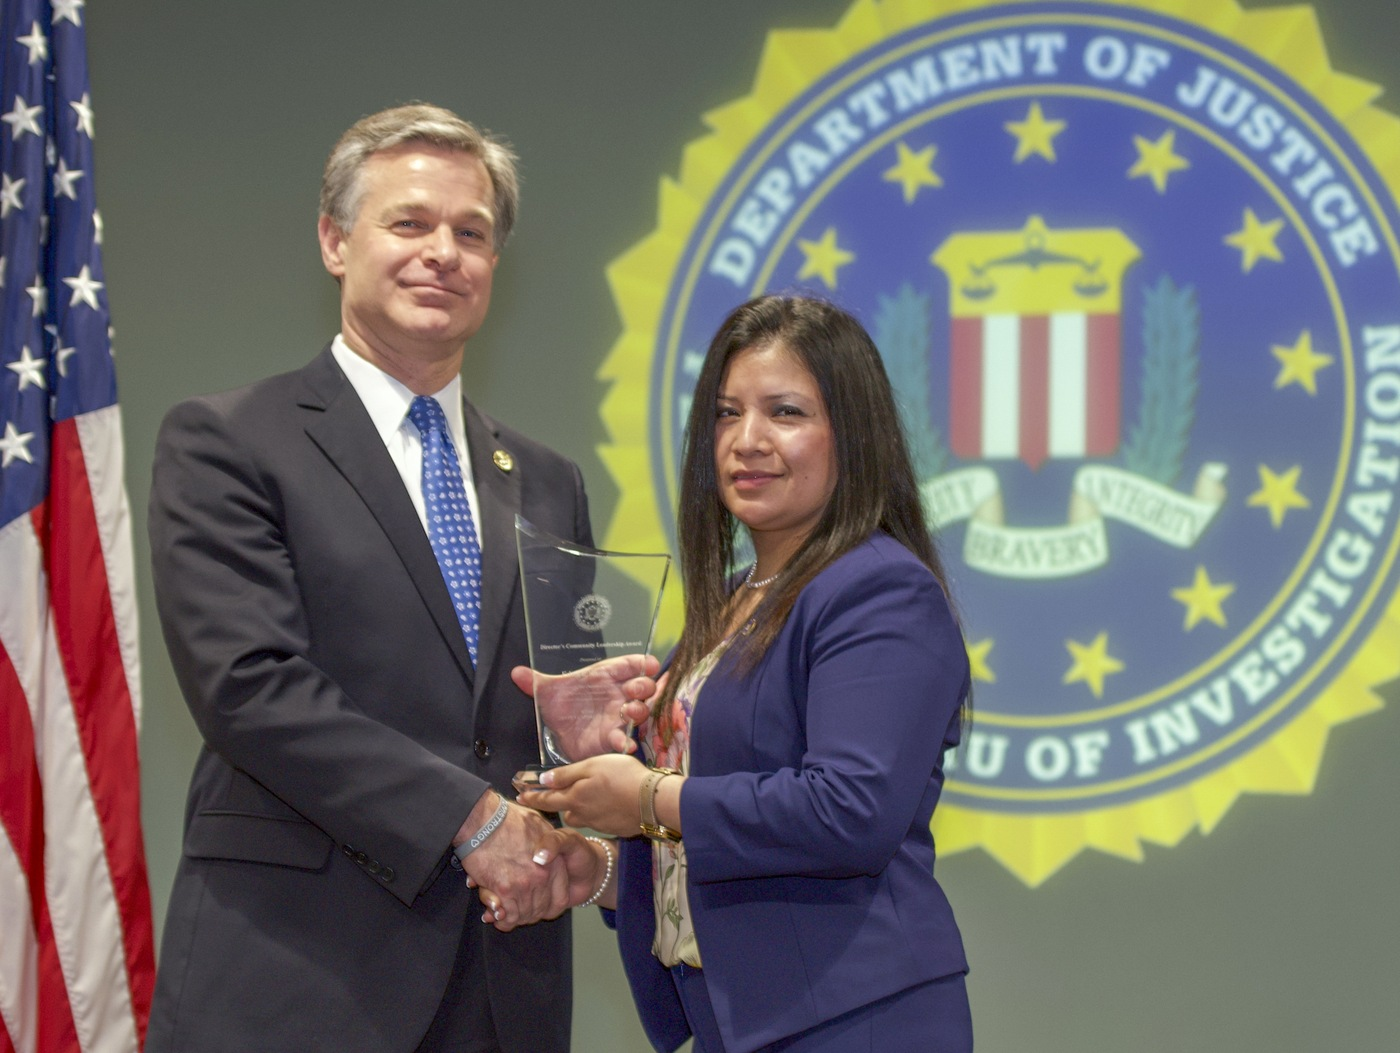 FBI Director Christopher Wray presents Little Rock Division recipient Edna I. Ramirez with the Director's Community Leadership Award (DCLA) at a ceremony at FBI Headquarters on May 3, 2019.